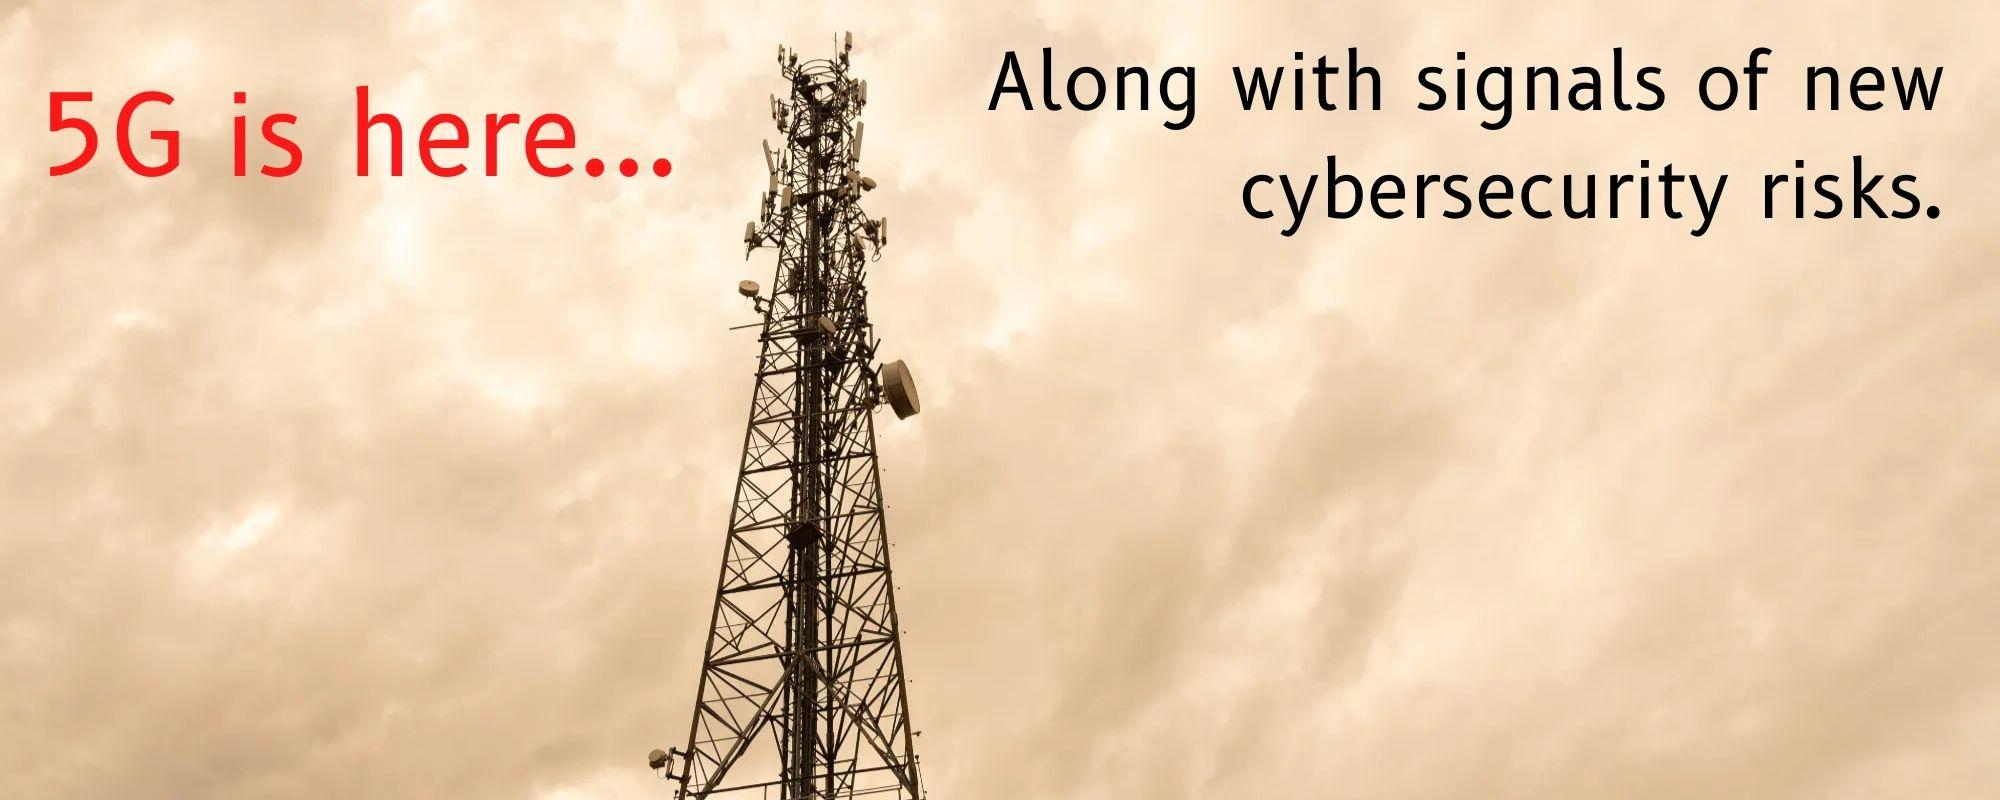 """A photo of a cellular tower with the words """"5G is here... along with signals of new cybersecurity risks."""""""